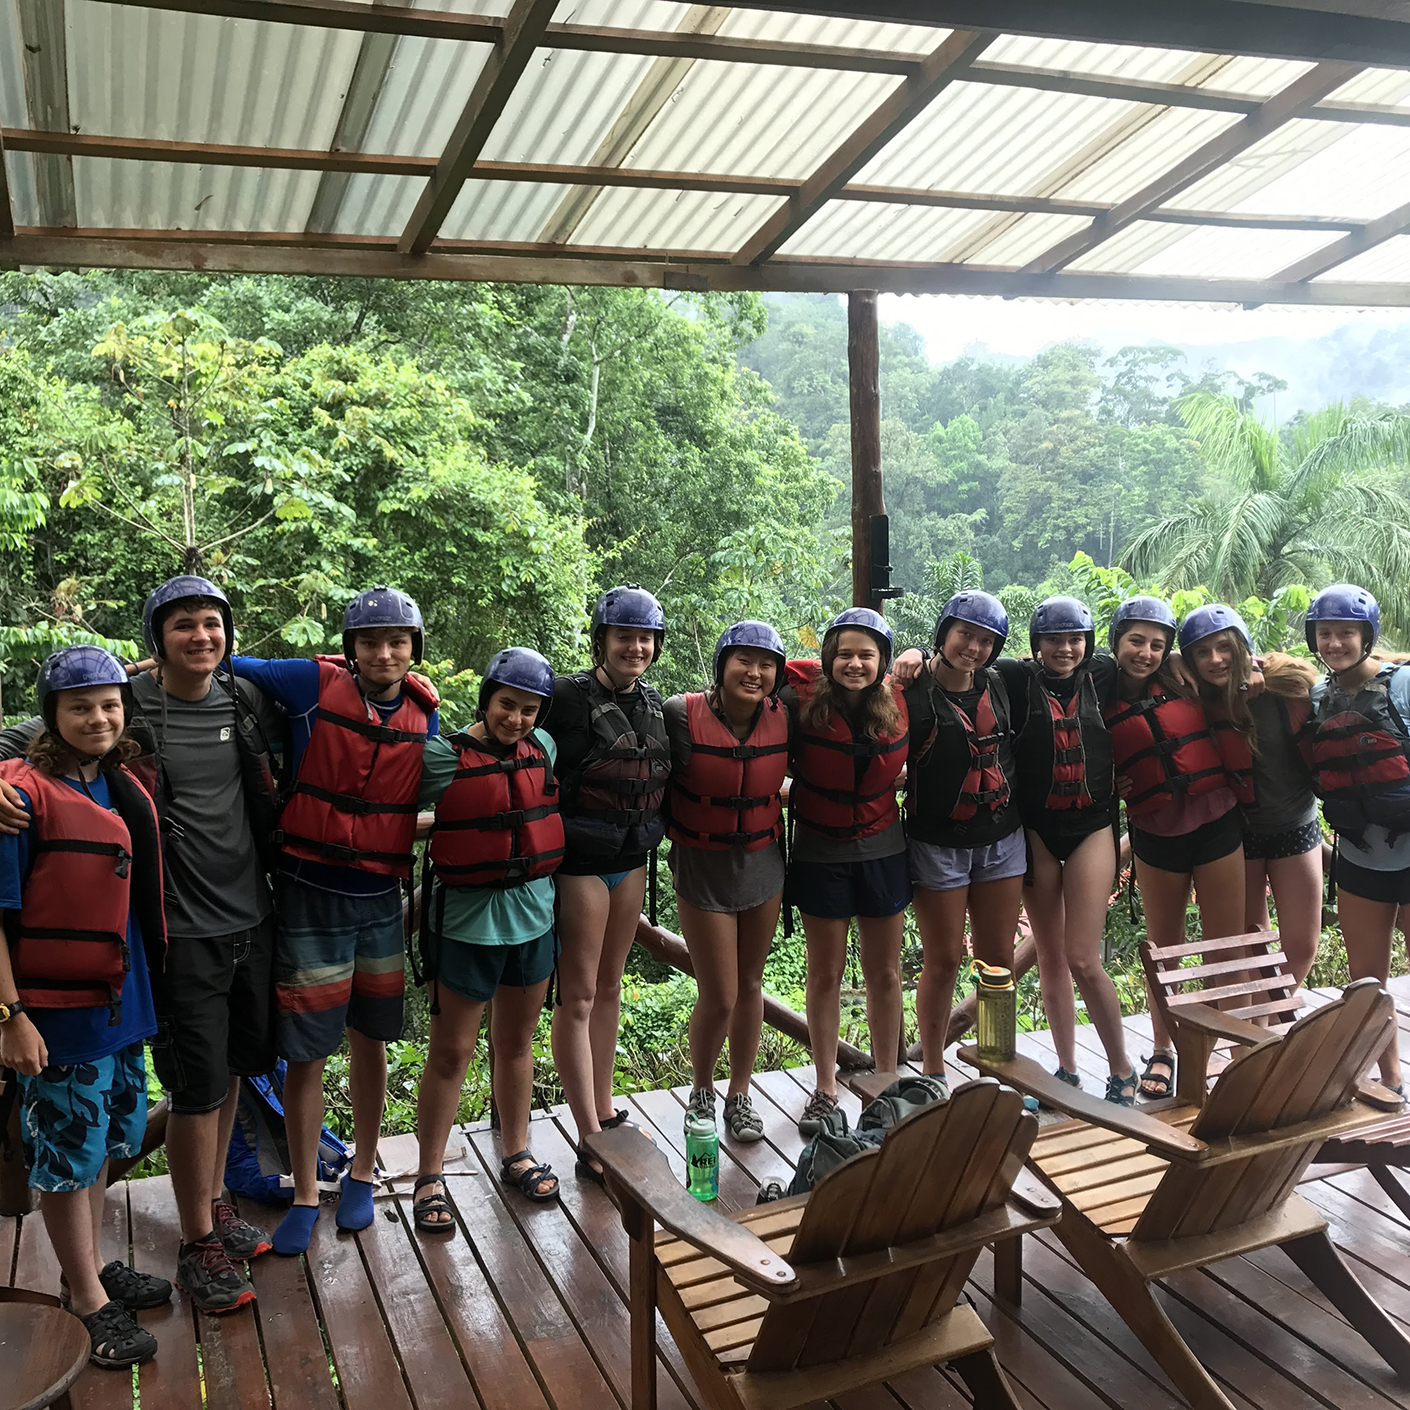 Whitewater rafting on the Costa Rica Pura Vida trip